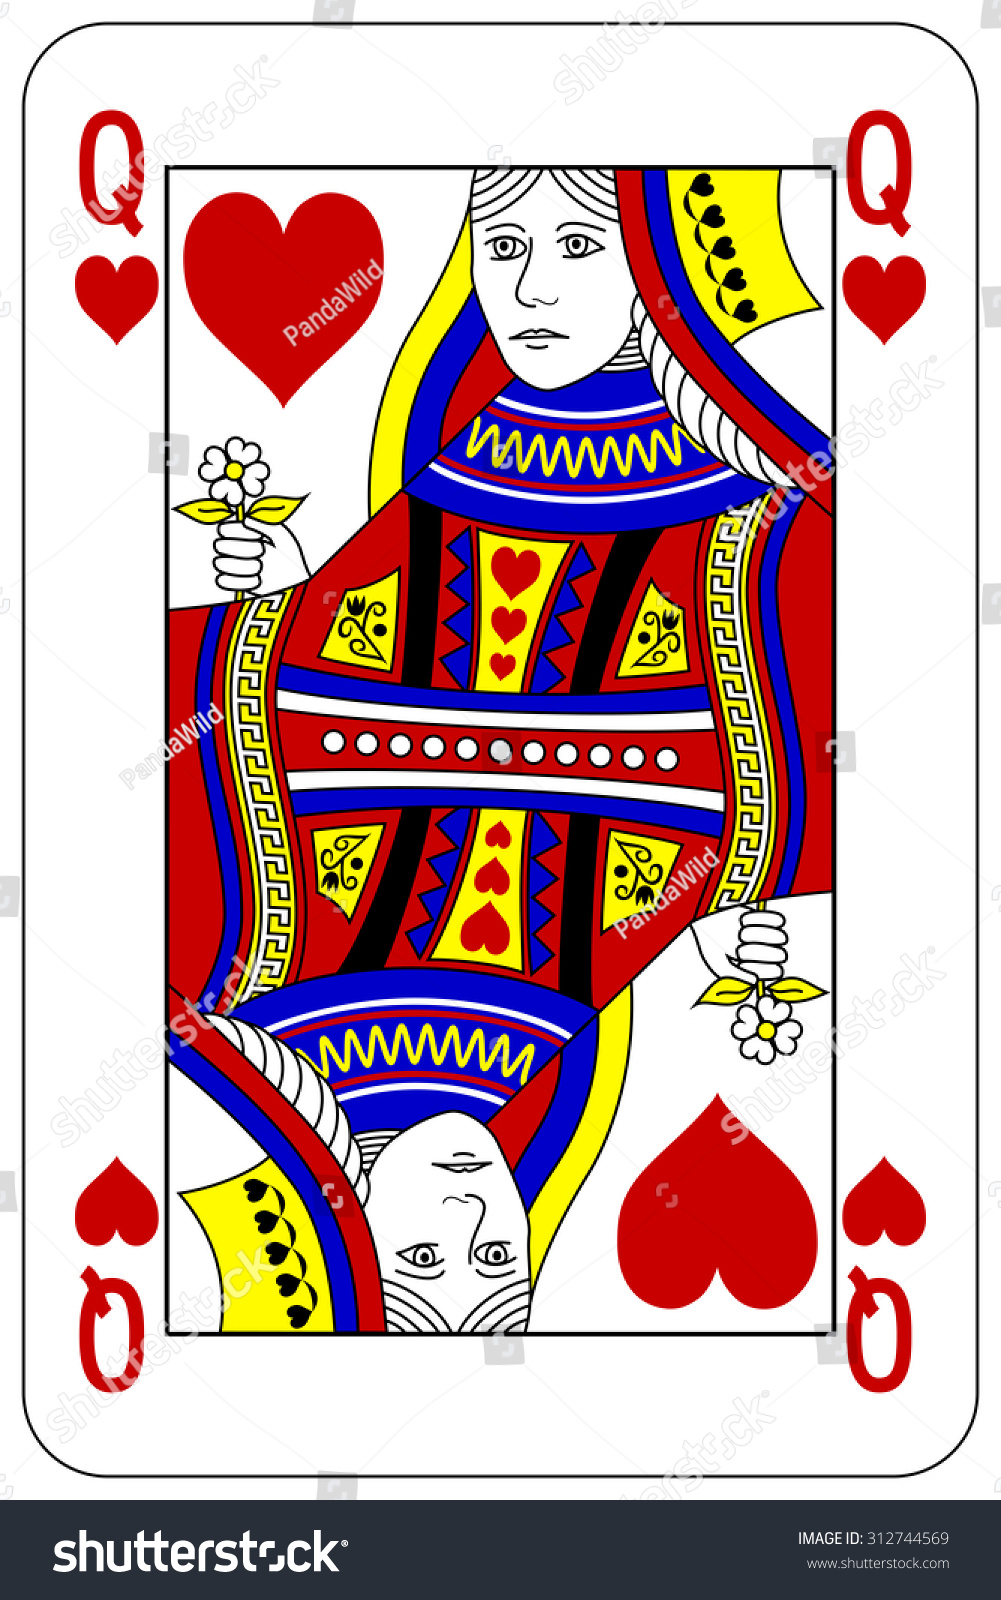 Poker Playing Card Queen Heart Stock Vector Royalty Free 312744569